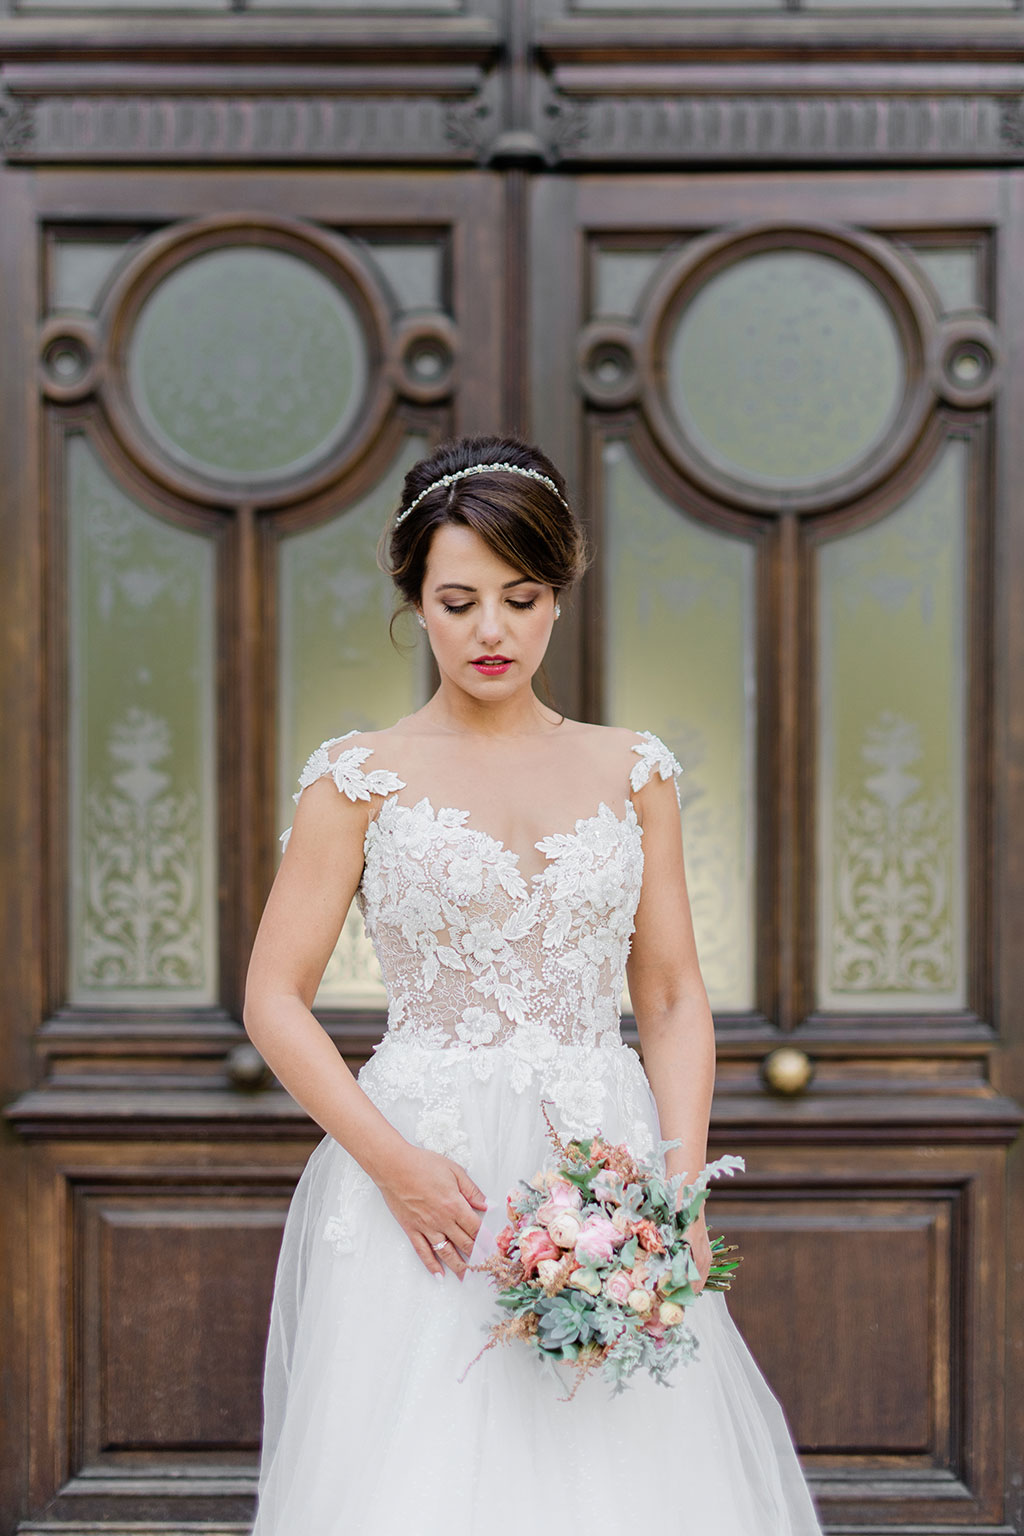 υπέροχο νυφικό πορτραίτο, a bride posing with her wedding bouquet in front of a door